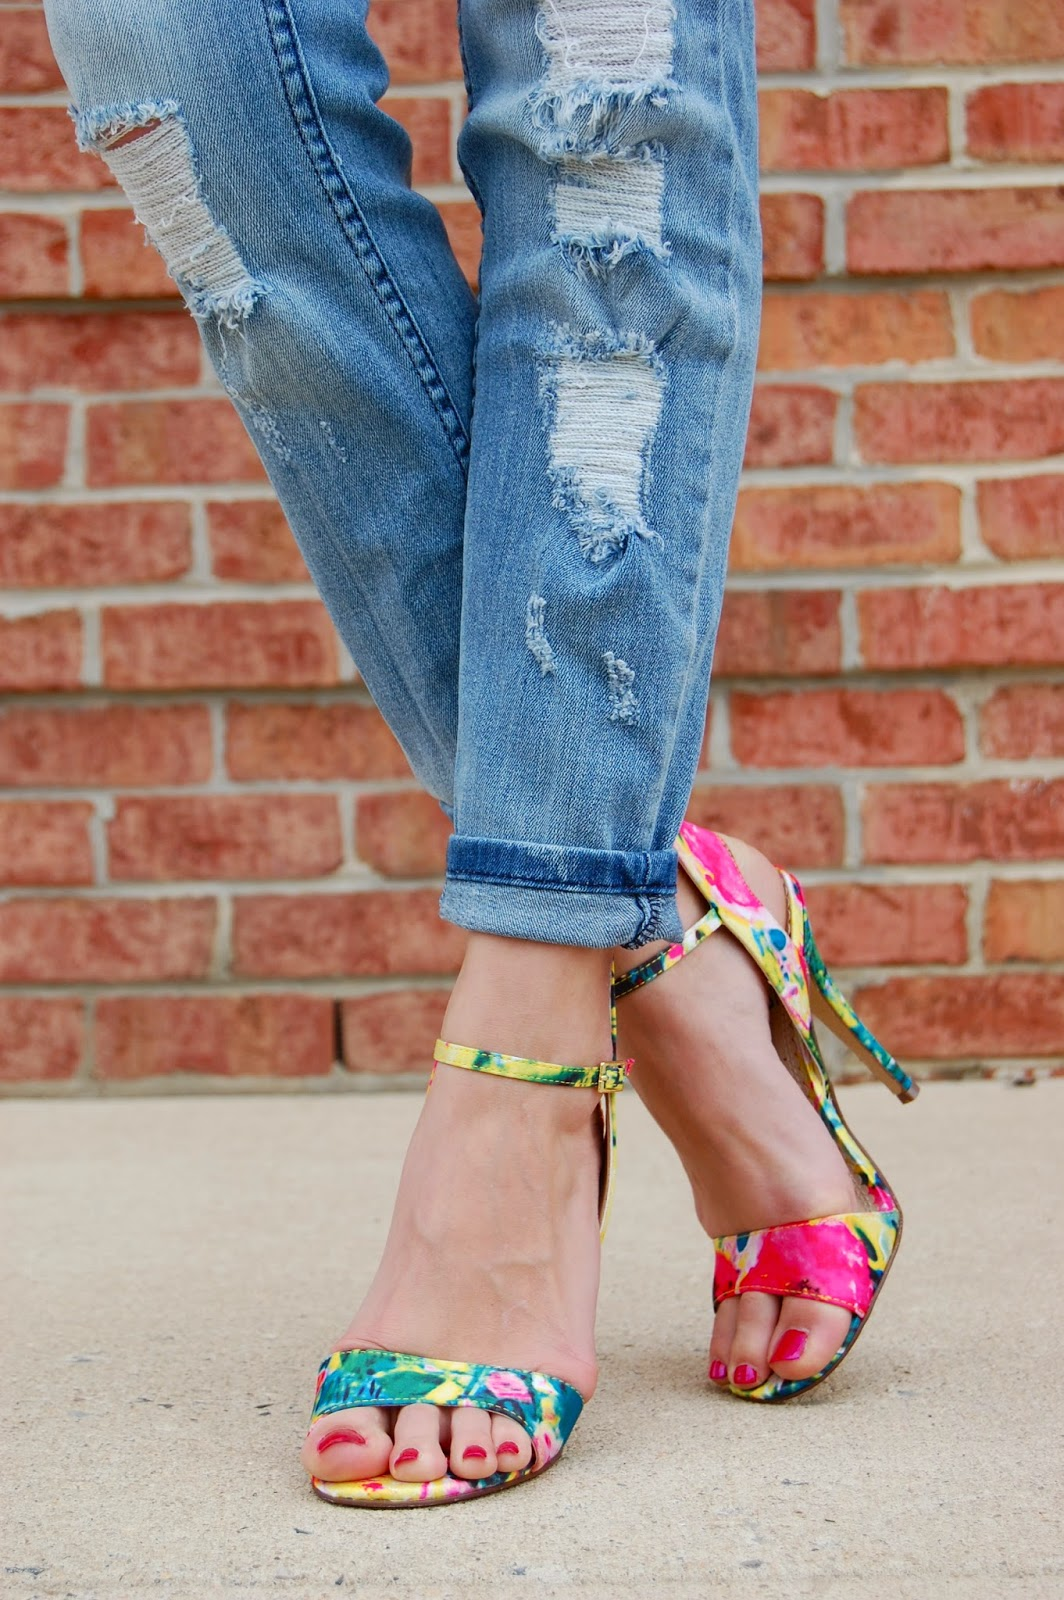 Wearing STS Blue from Nordstrom destroyed boyfriend jeans, Mix No 6 cameo multi color sandal